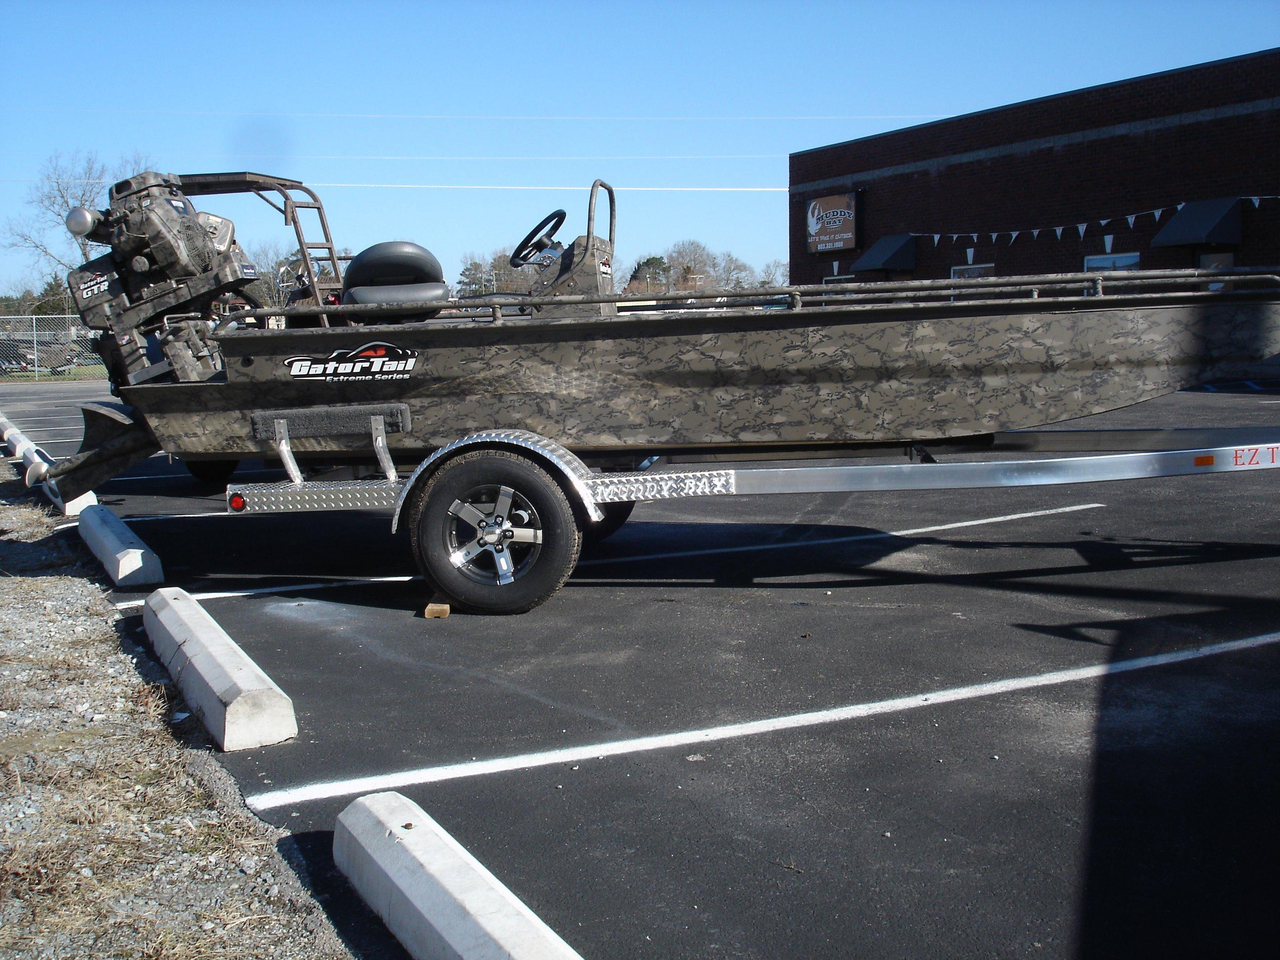 2017 new gator tail 1854 extreme center console aluminum for Center console fishing boats for sale